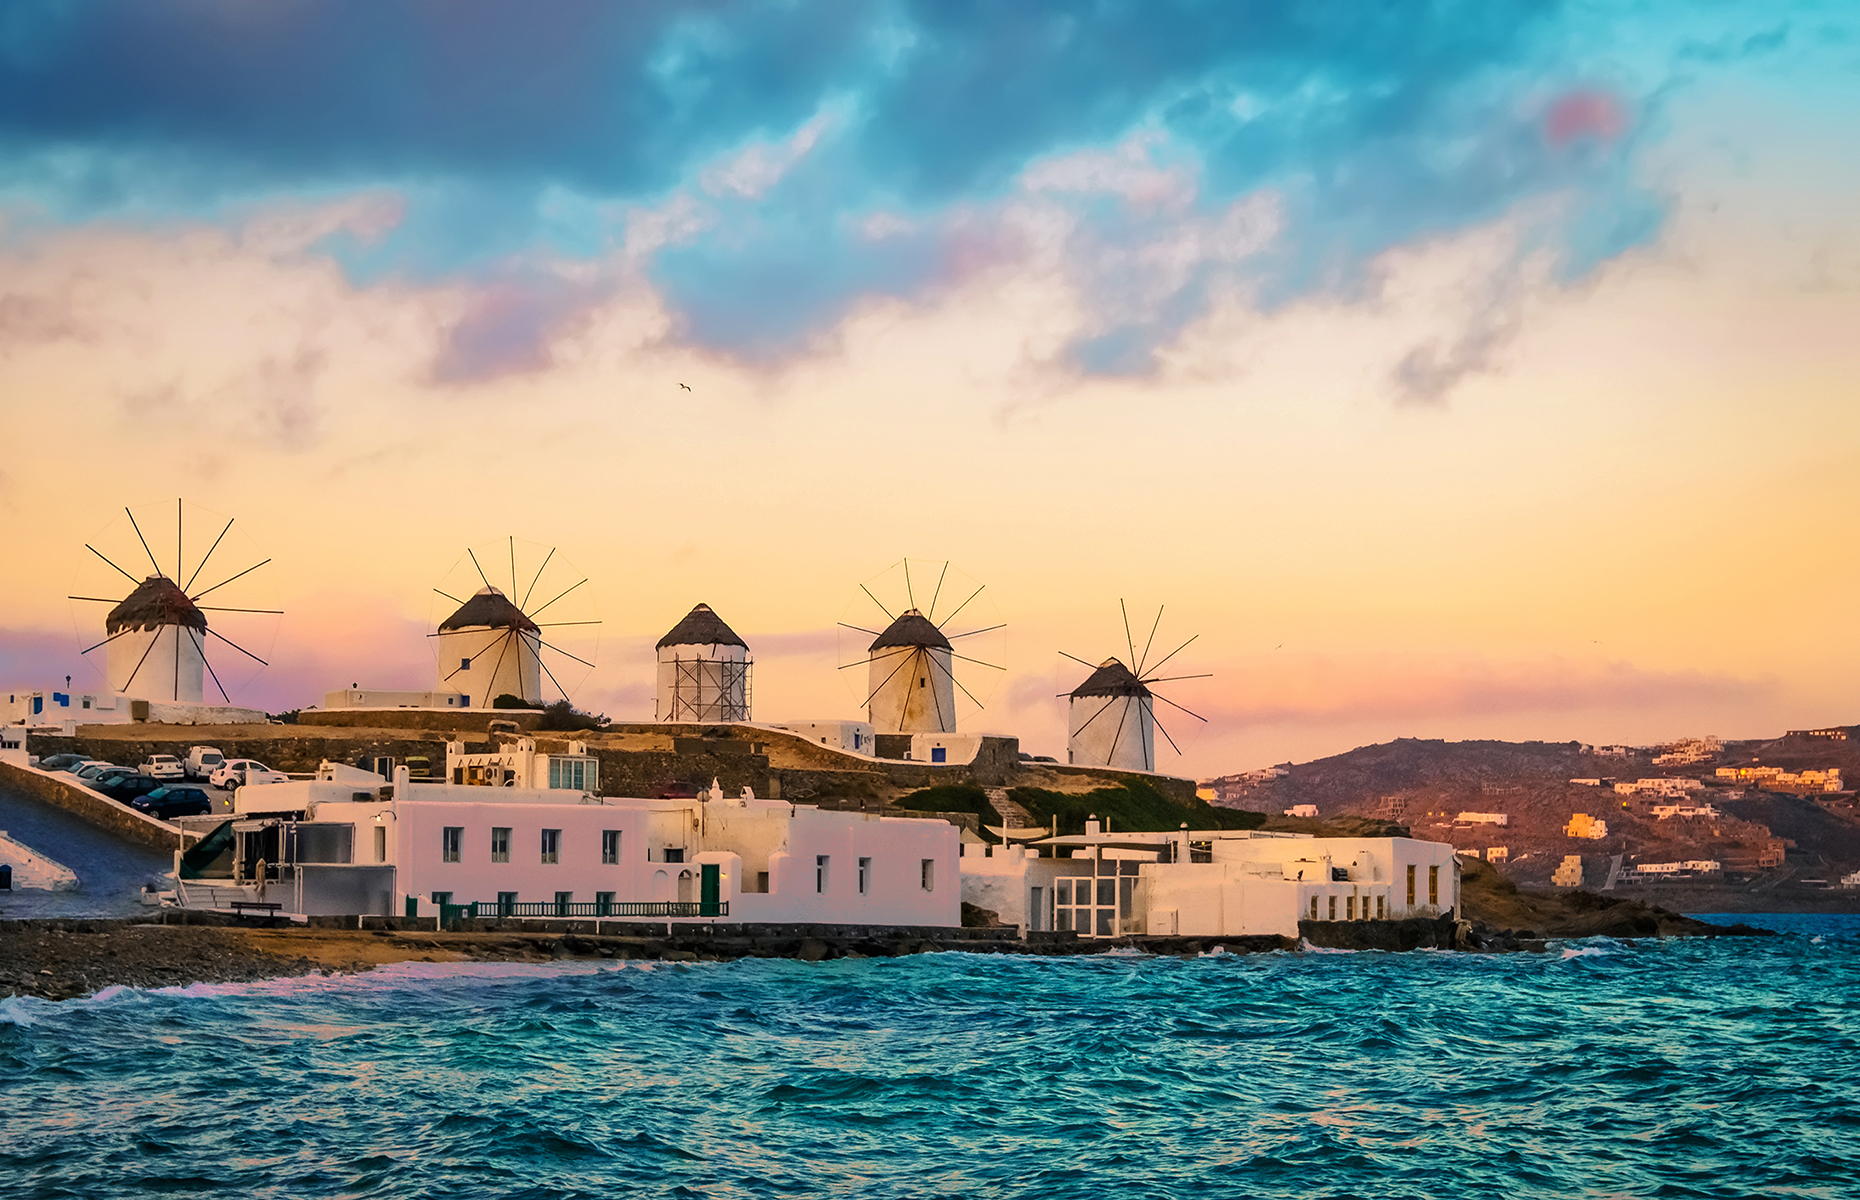 View of Mykonos windmills at sunset